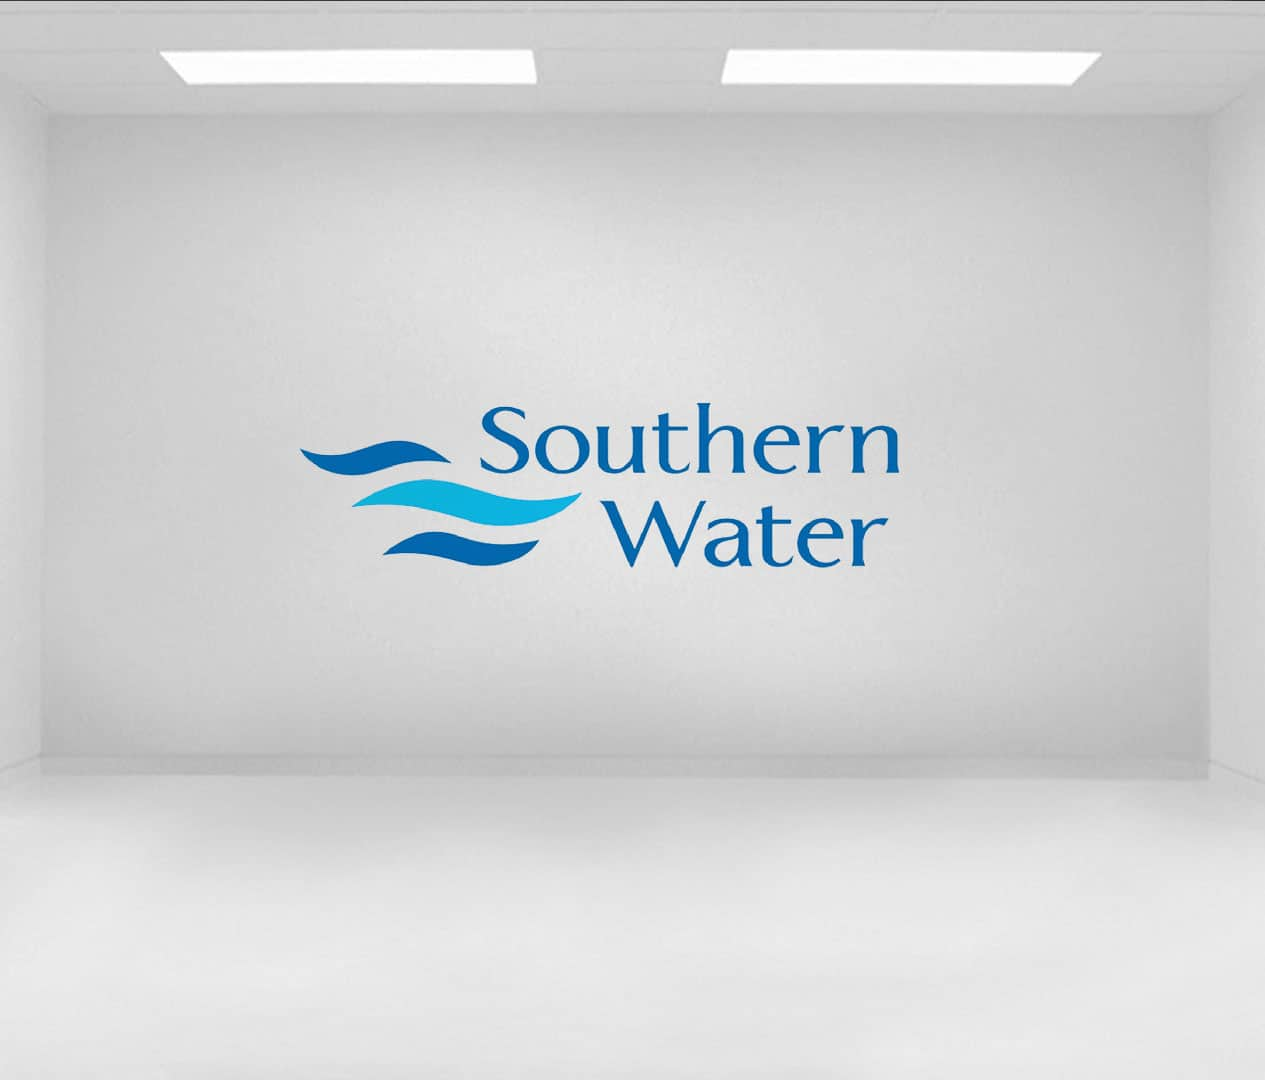 Southern Water VR